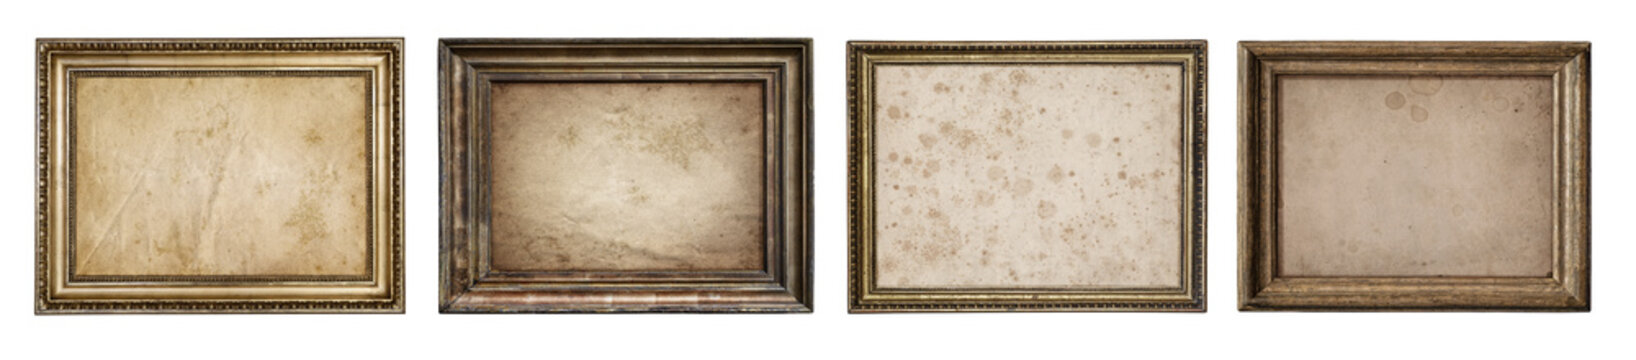 Collection of old wooden frames with canvas isolated on a white background. Artistic canvas and frames design element on the theme of art, creativity, painting, photography.